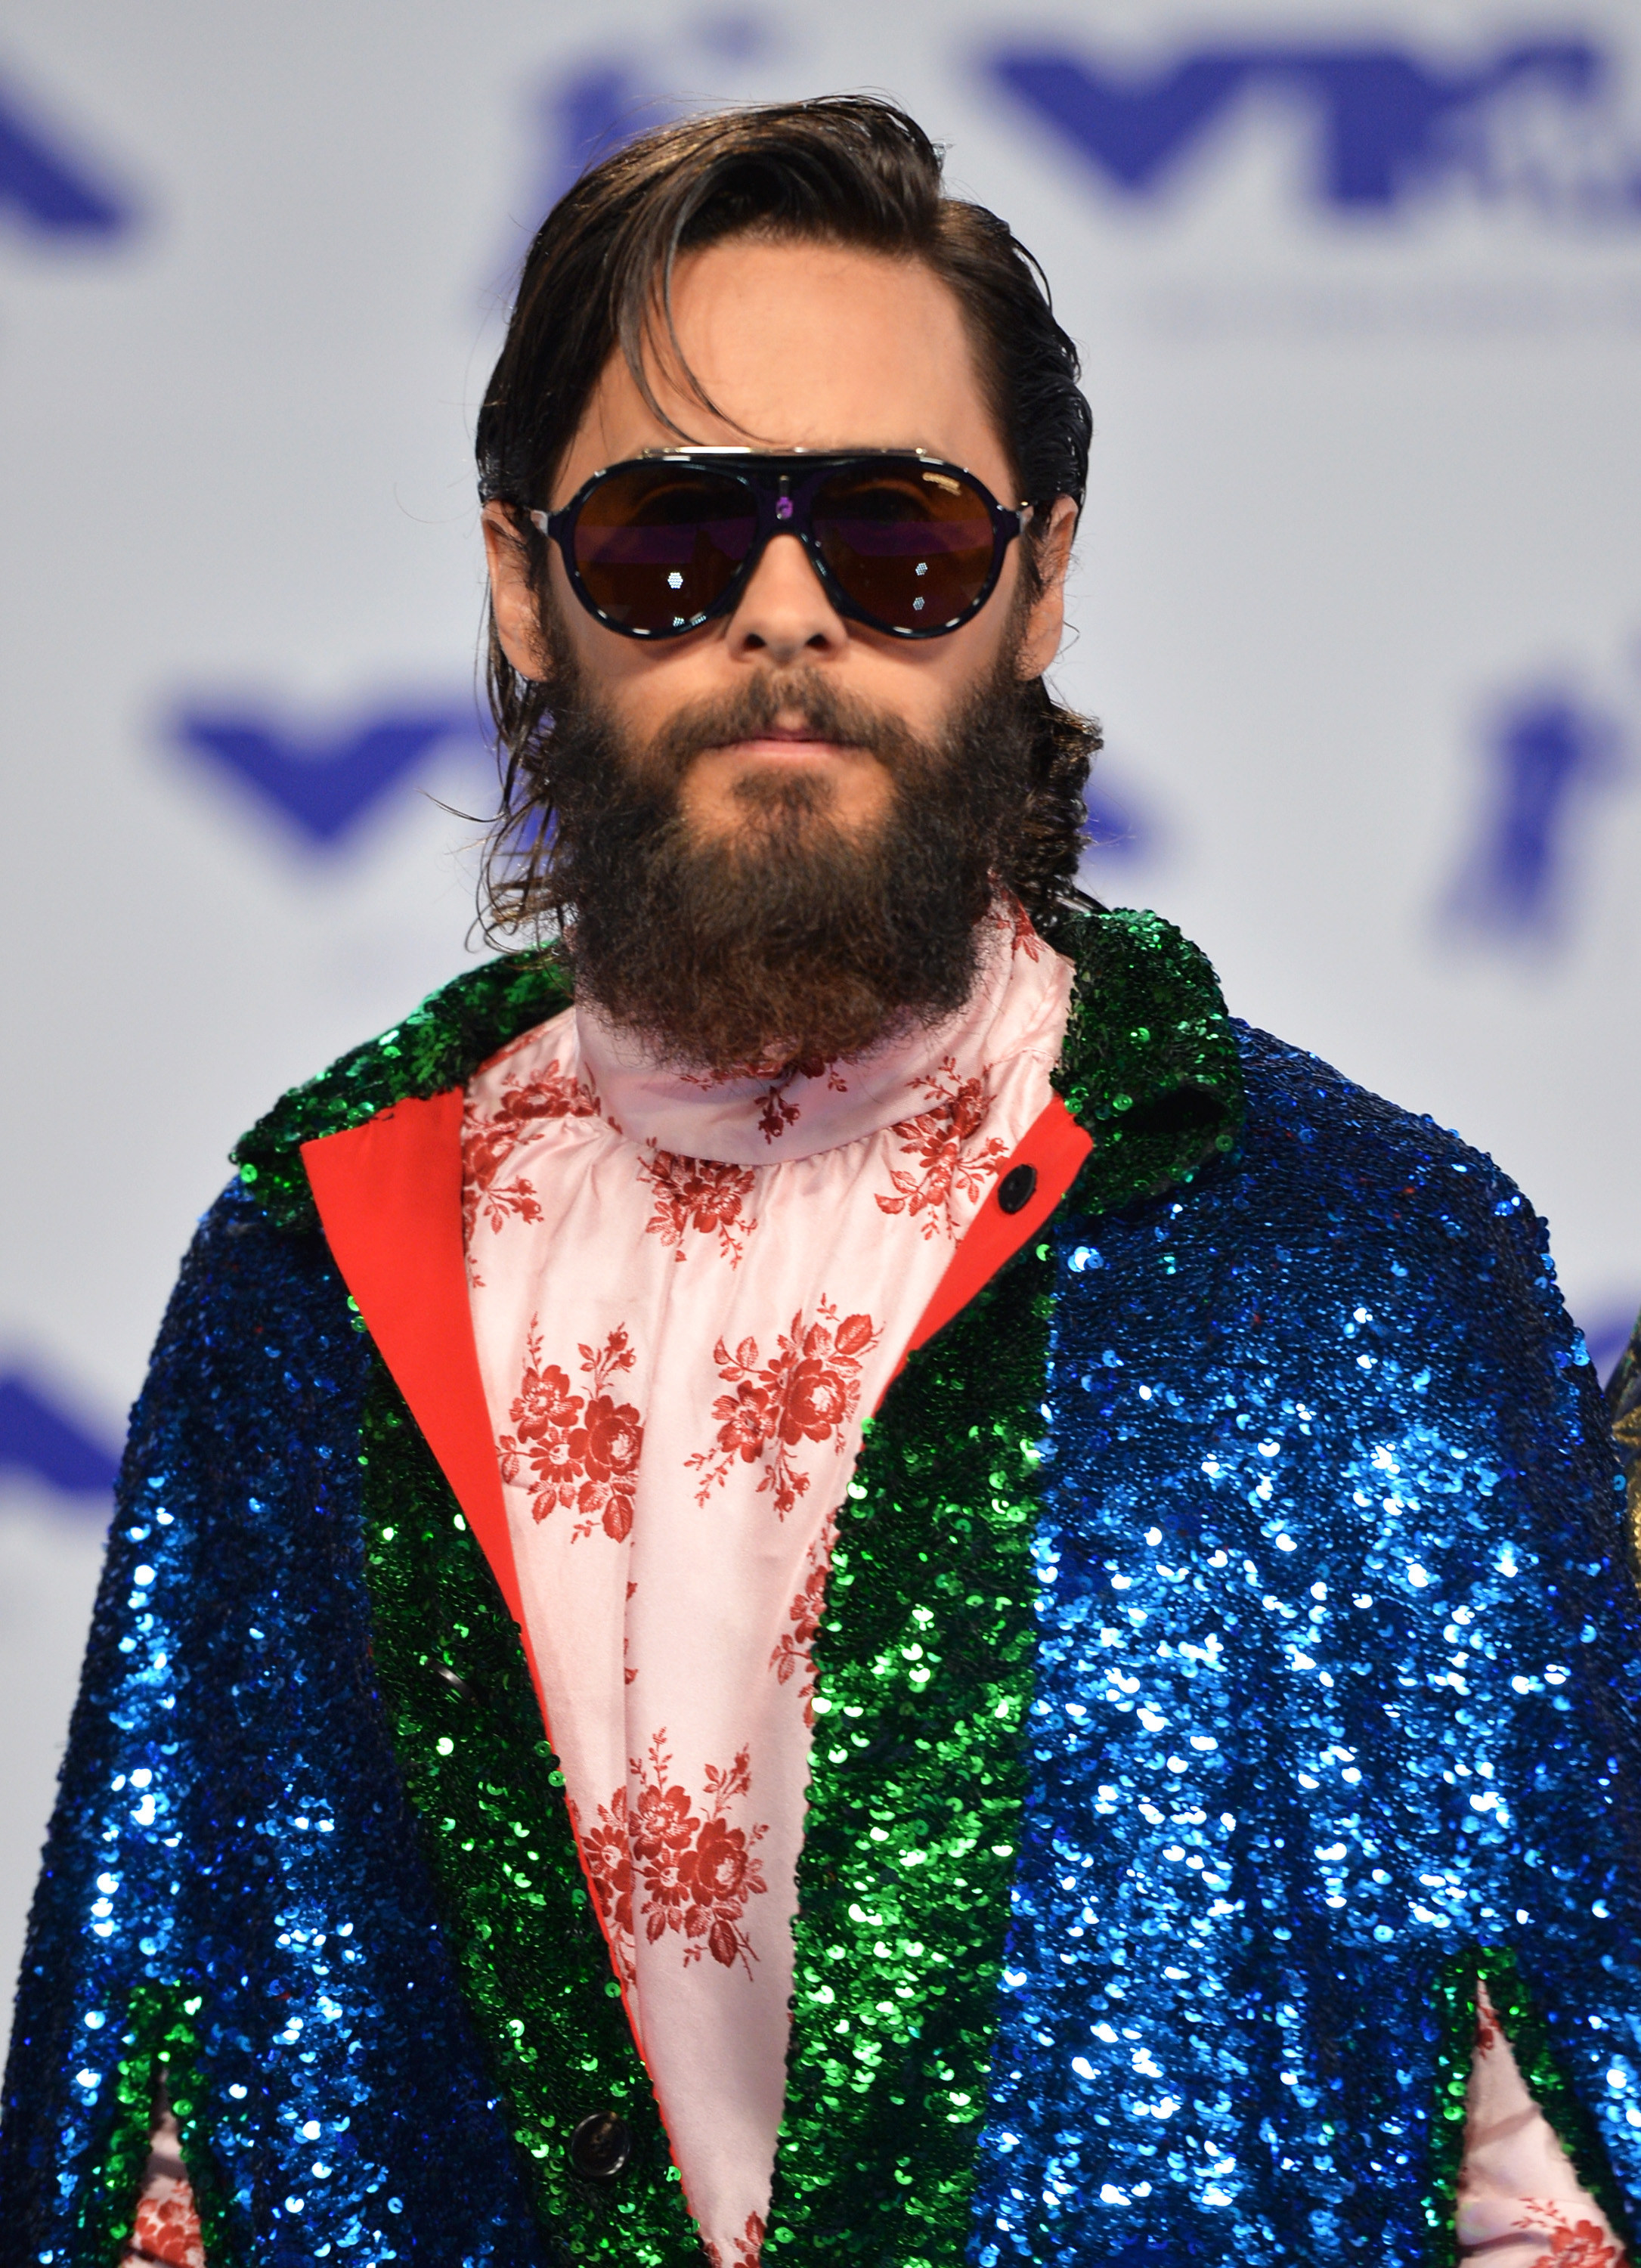 Jared Leto at the Video Music Awards in 2017